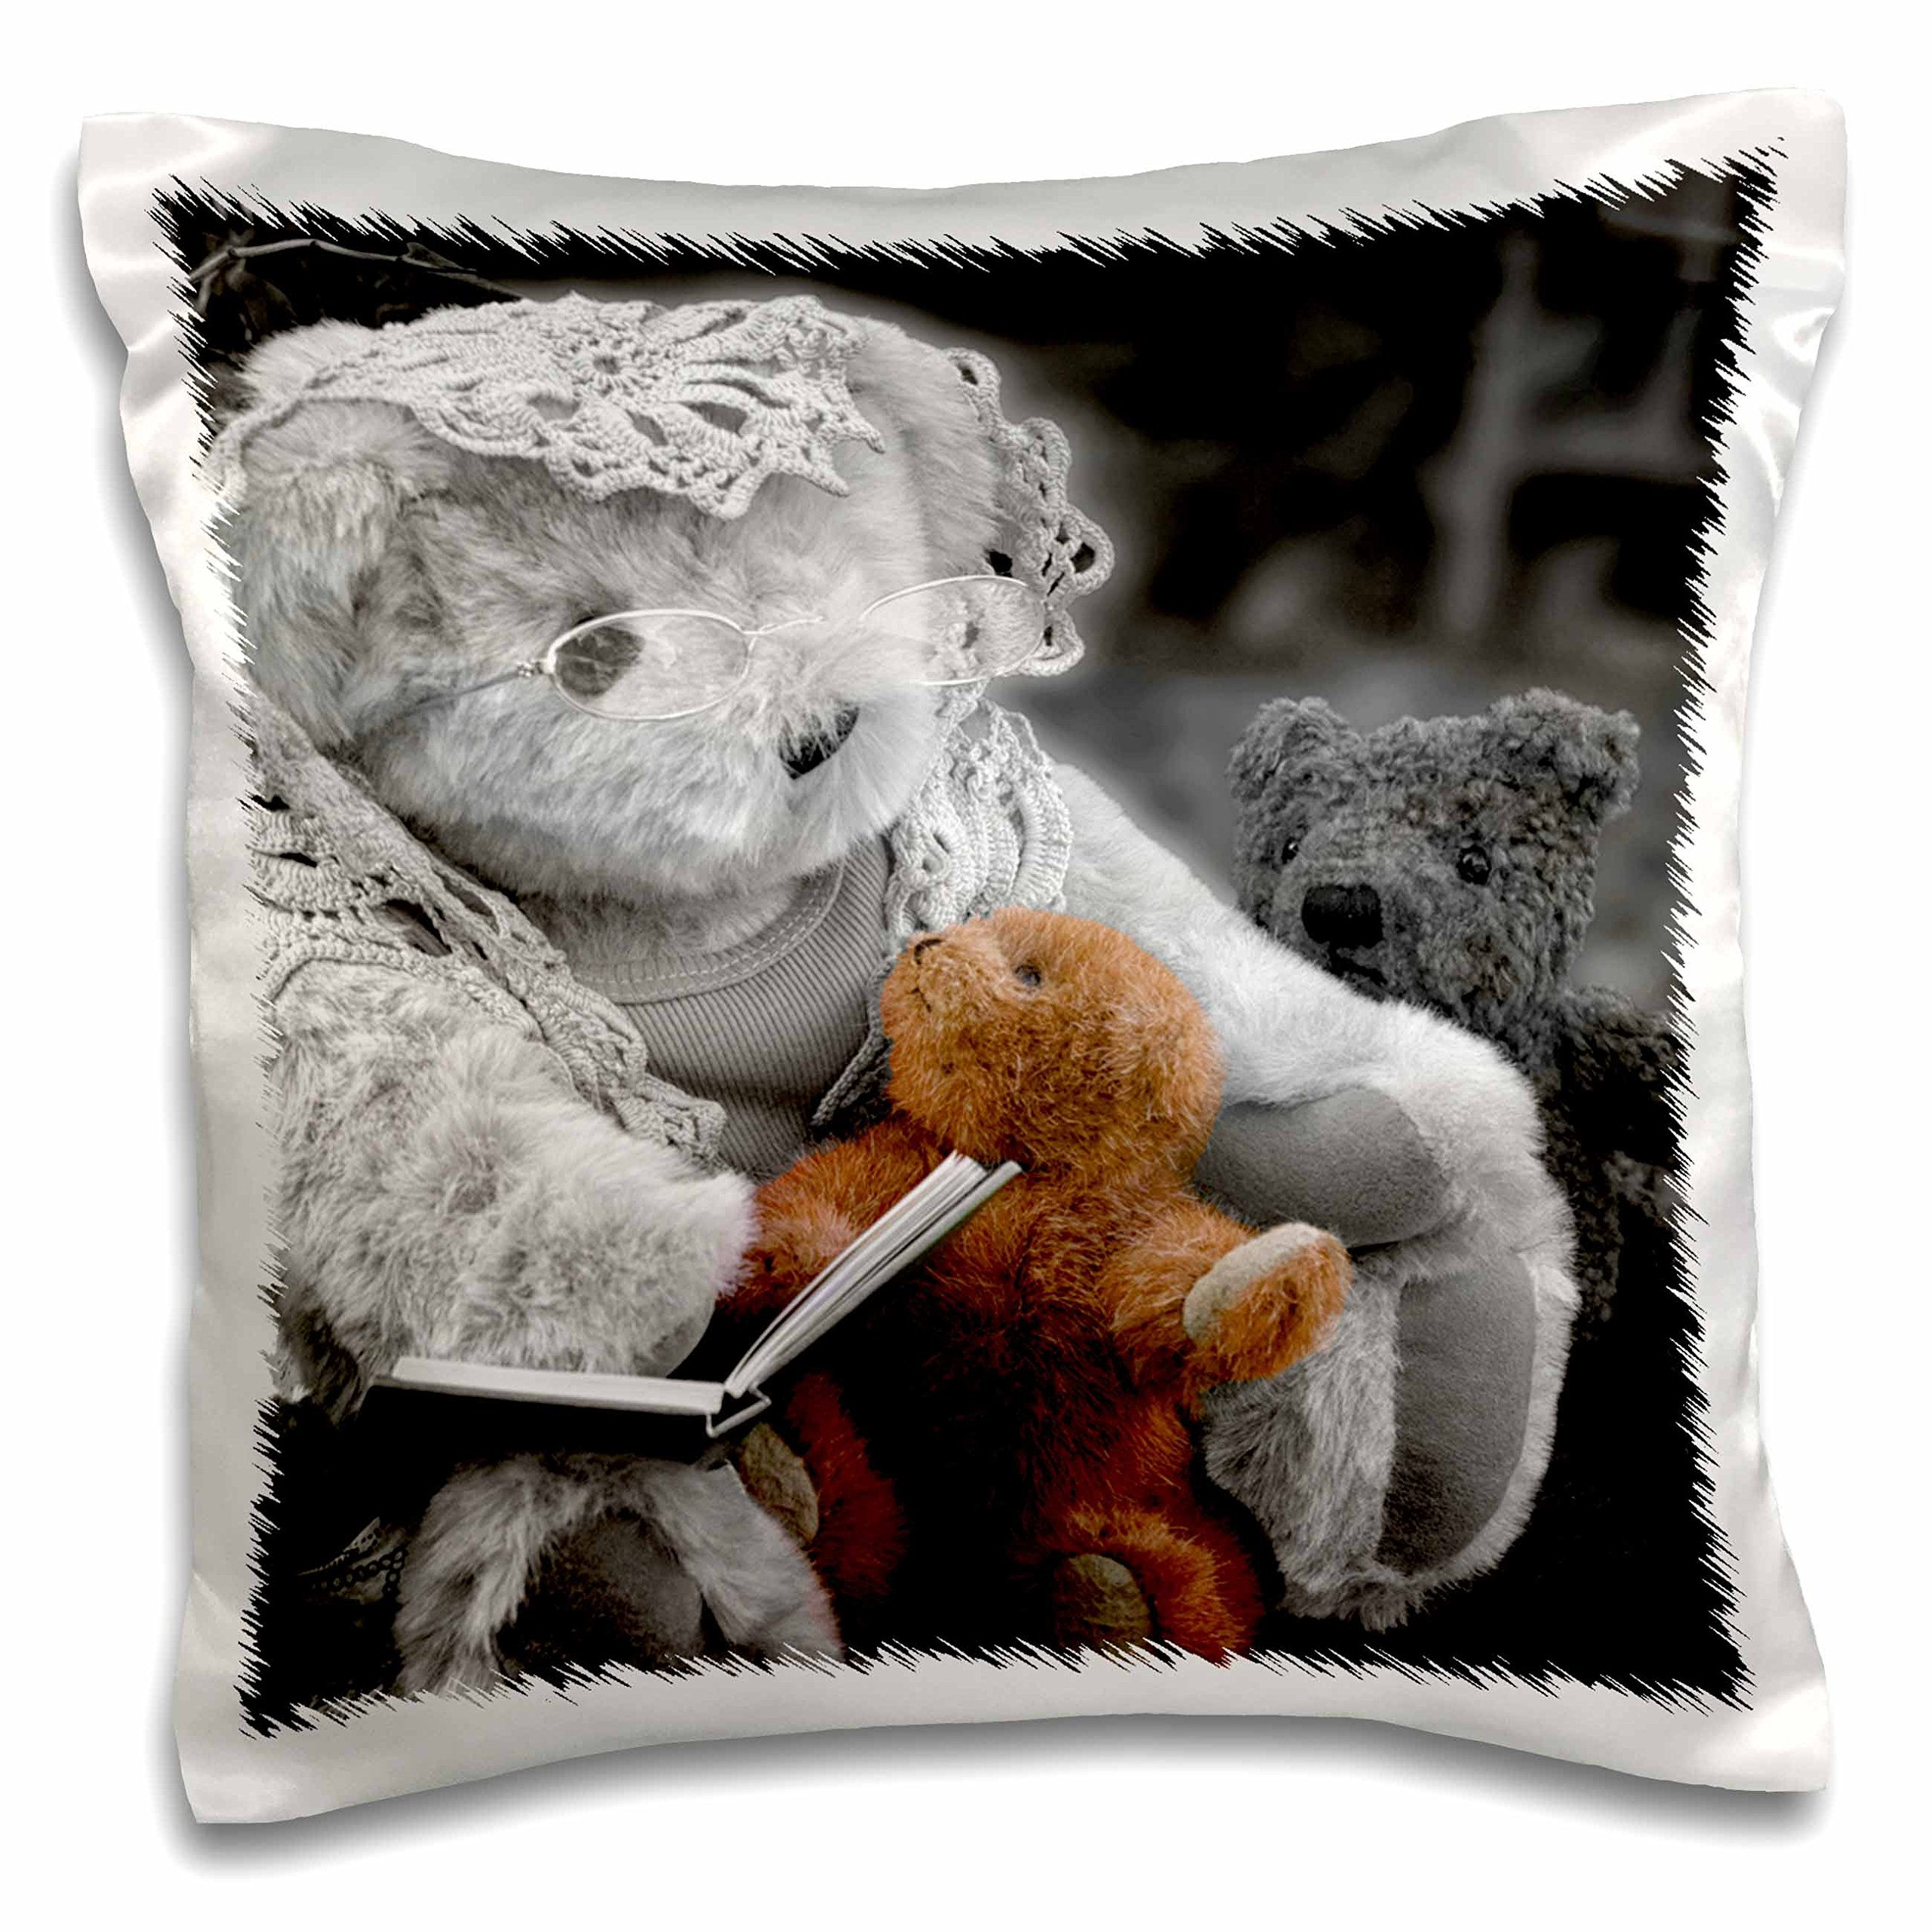 3dRose Grandmother Teddy Bear Reading to Children - Pillow Case, 16 by 16-inch (pc_164750_1)